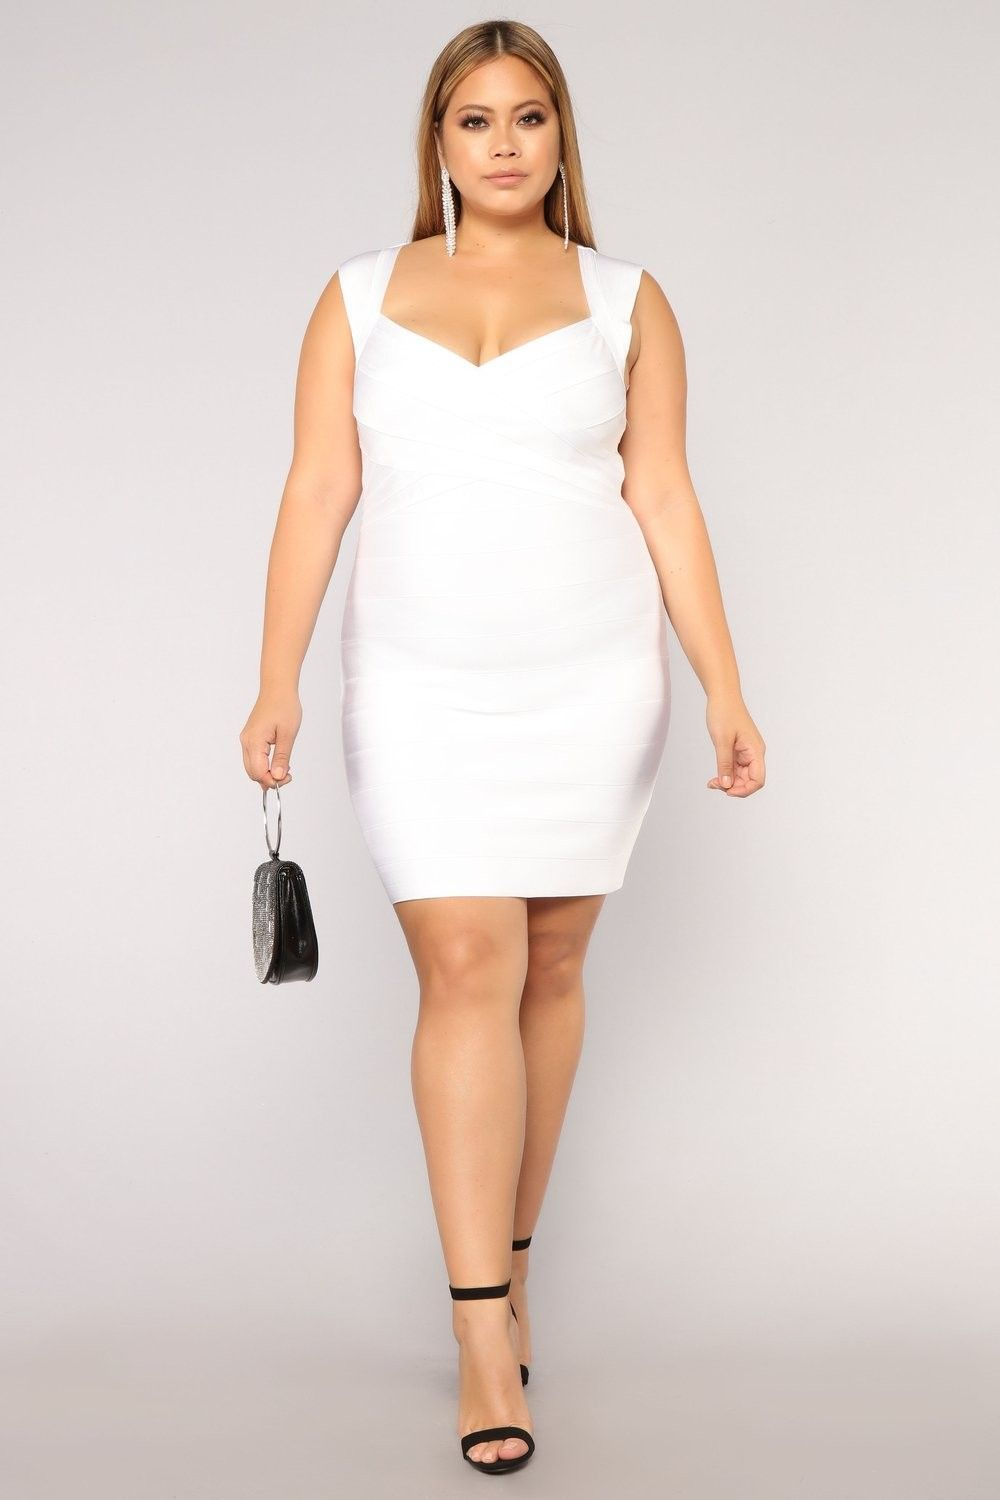 Plus Size Normandy Bandage Dress - White $39.99 #fashion #ootd ...